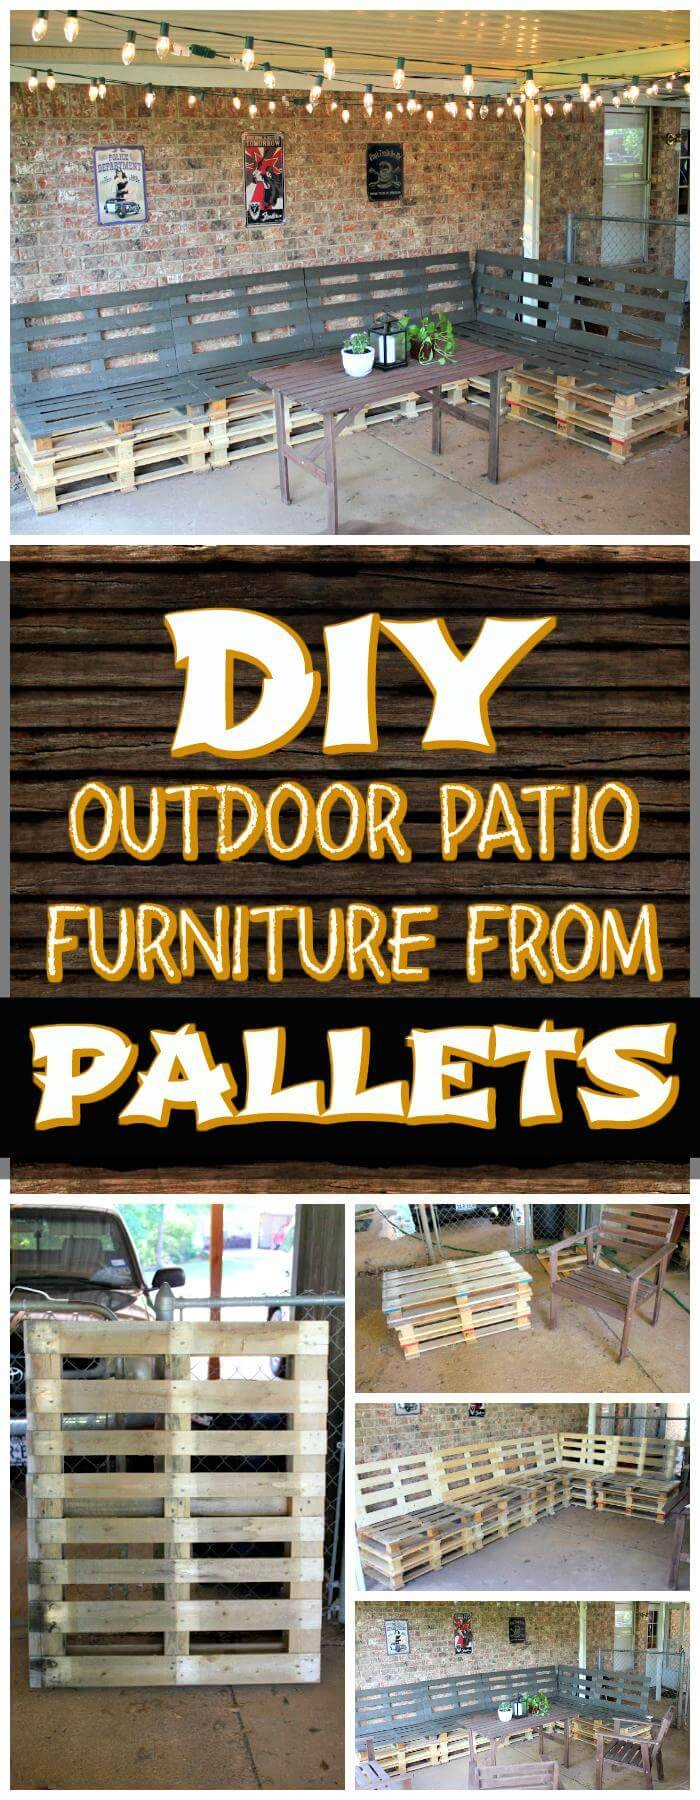 DIY Pallet Patio Furniture for Outdoor